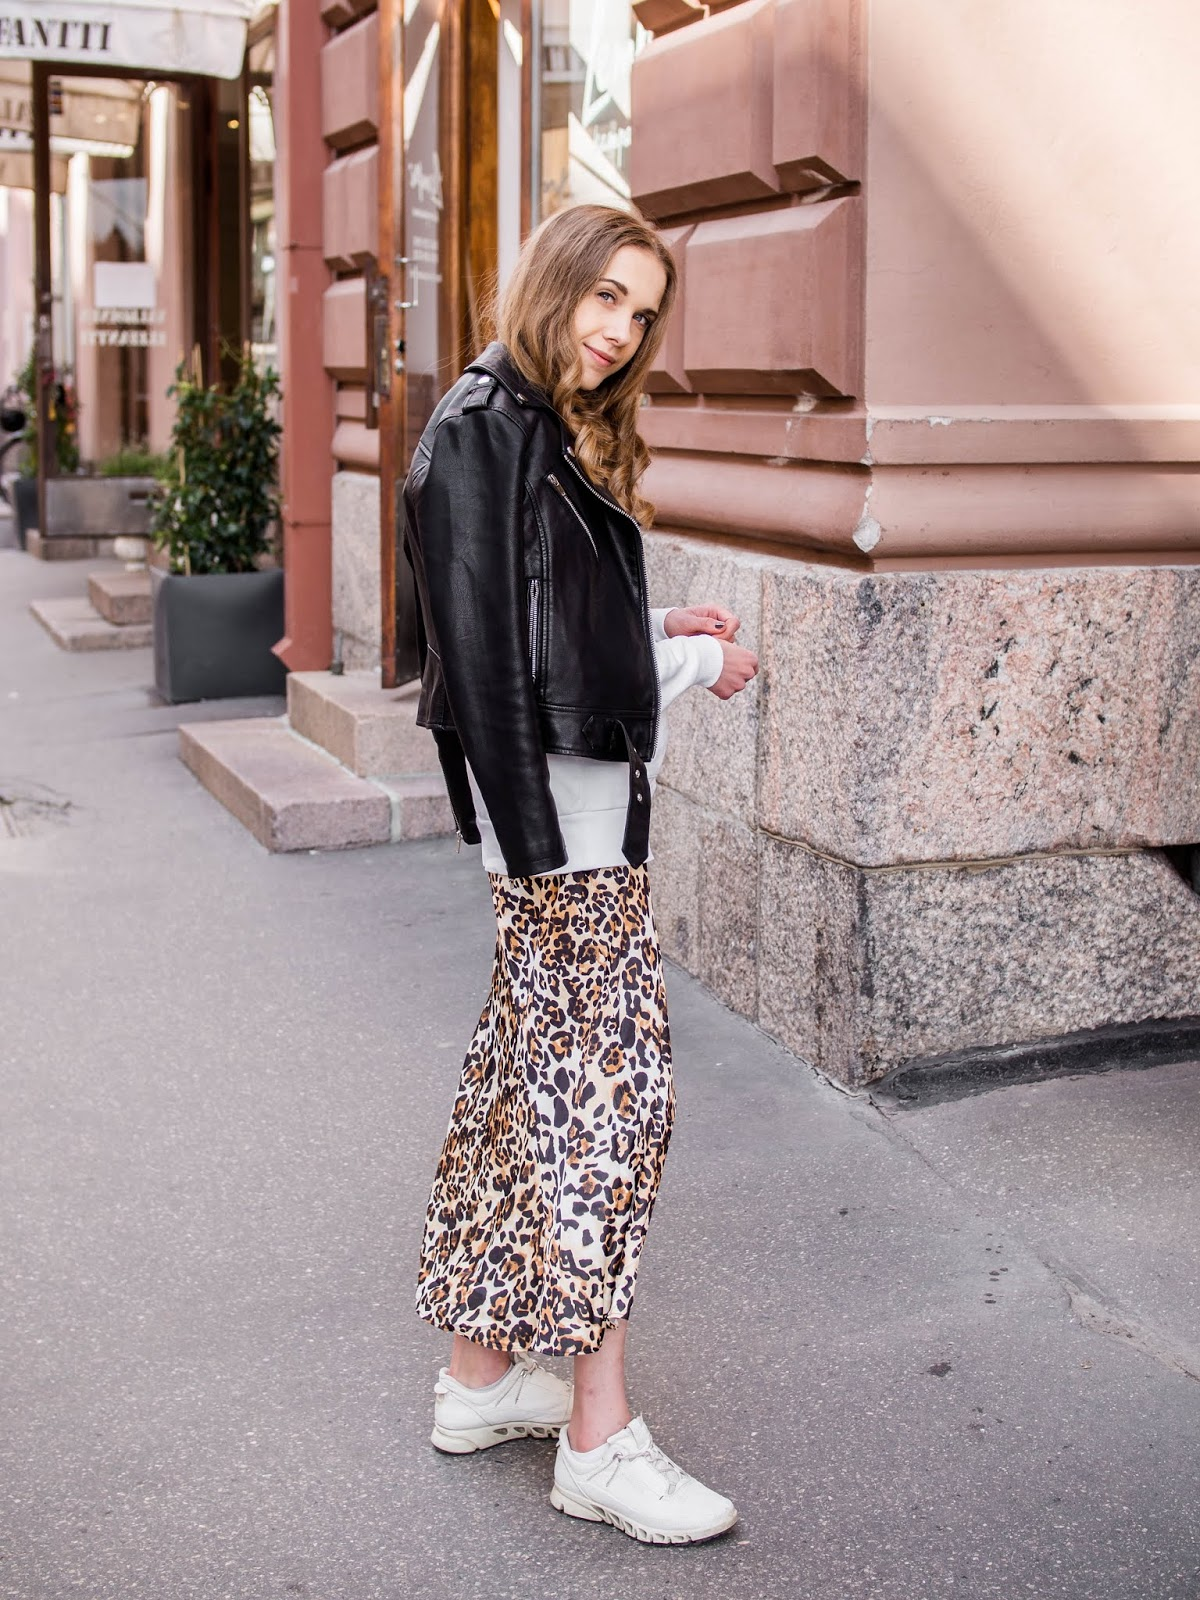 Casual and sporty outfit with leopard skirt and white hoodie - Rento ja sporttinen asu leopardihameen ja valkoisen hupparin kanssa